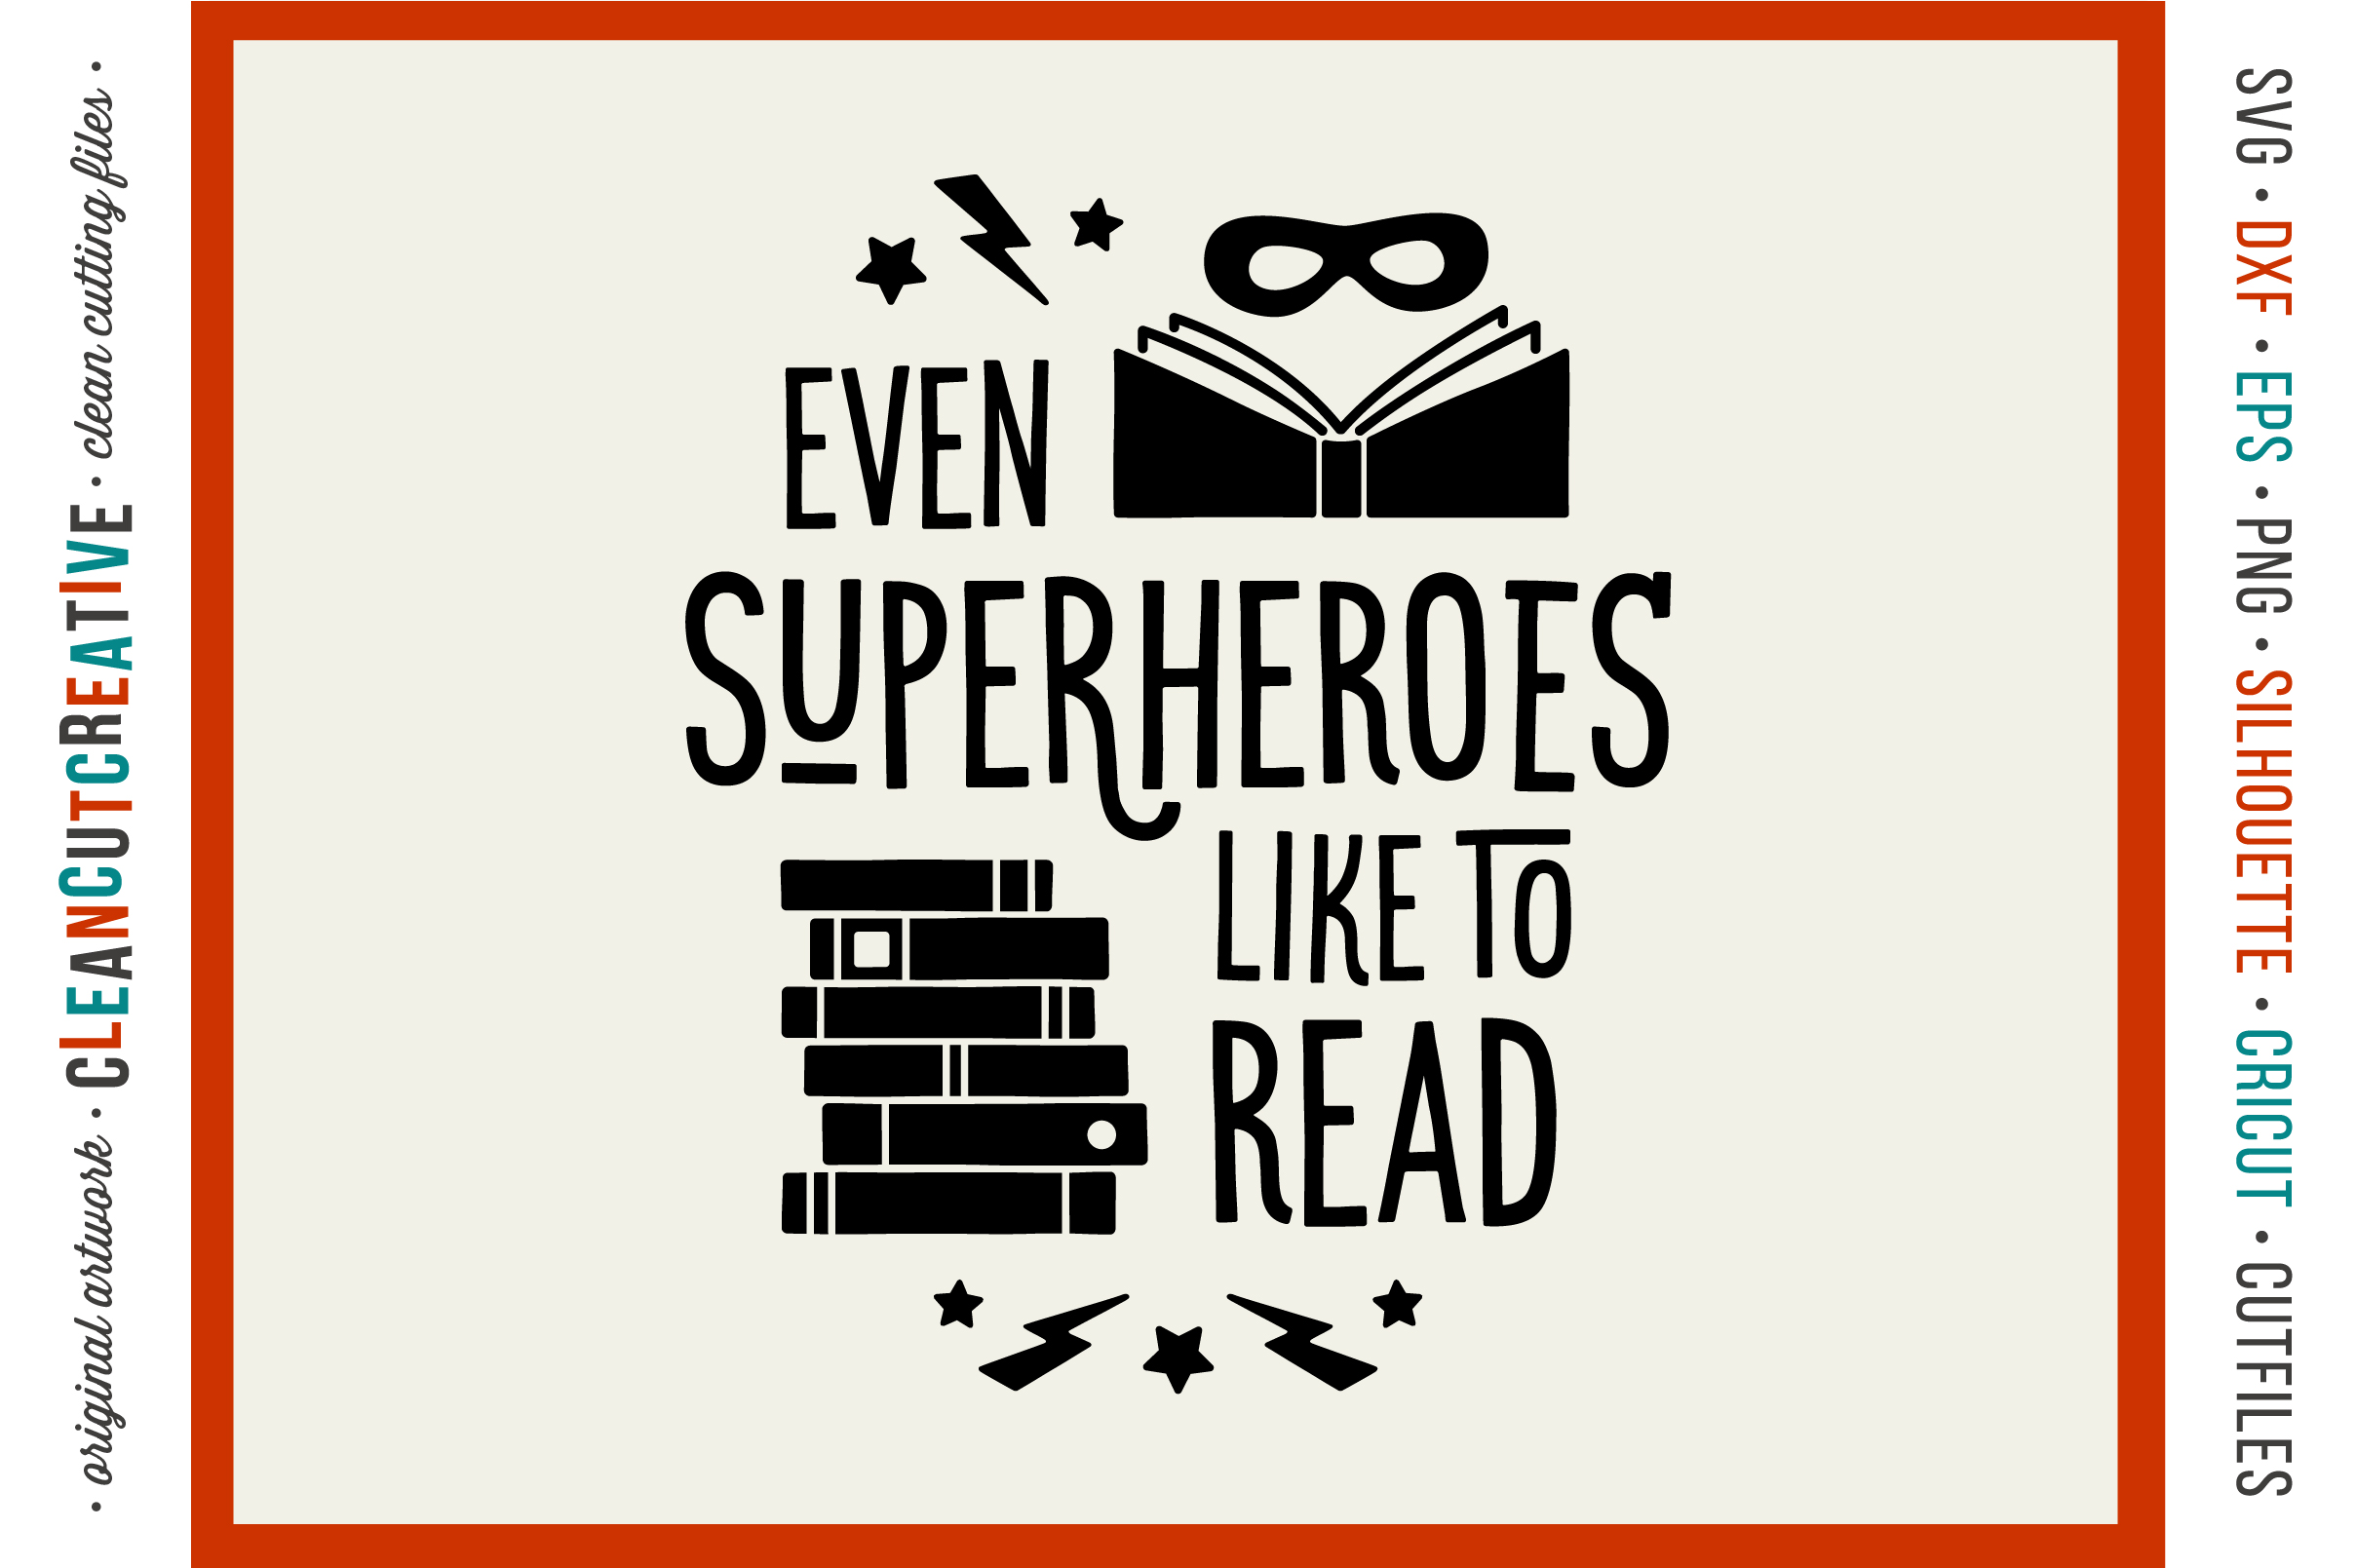 Even SUPERHEROES like to READ! - Cricut Silhouette cut file example image 1